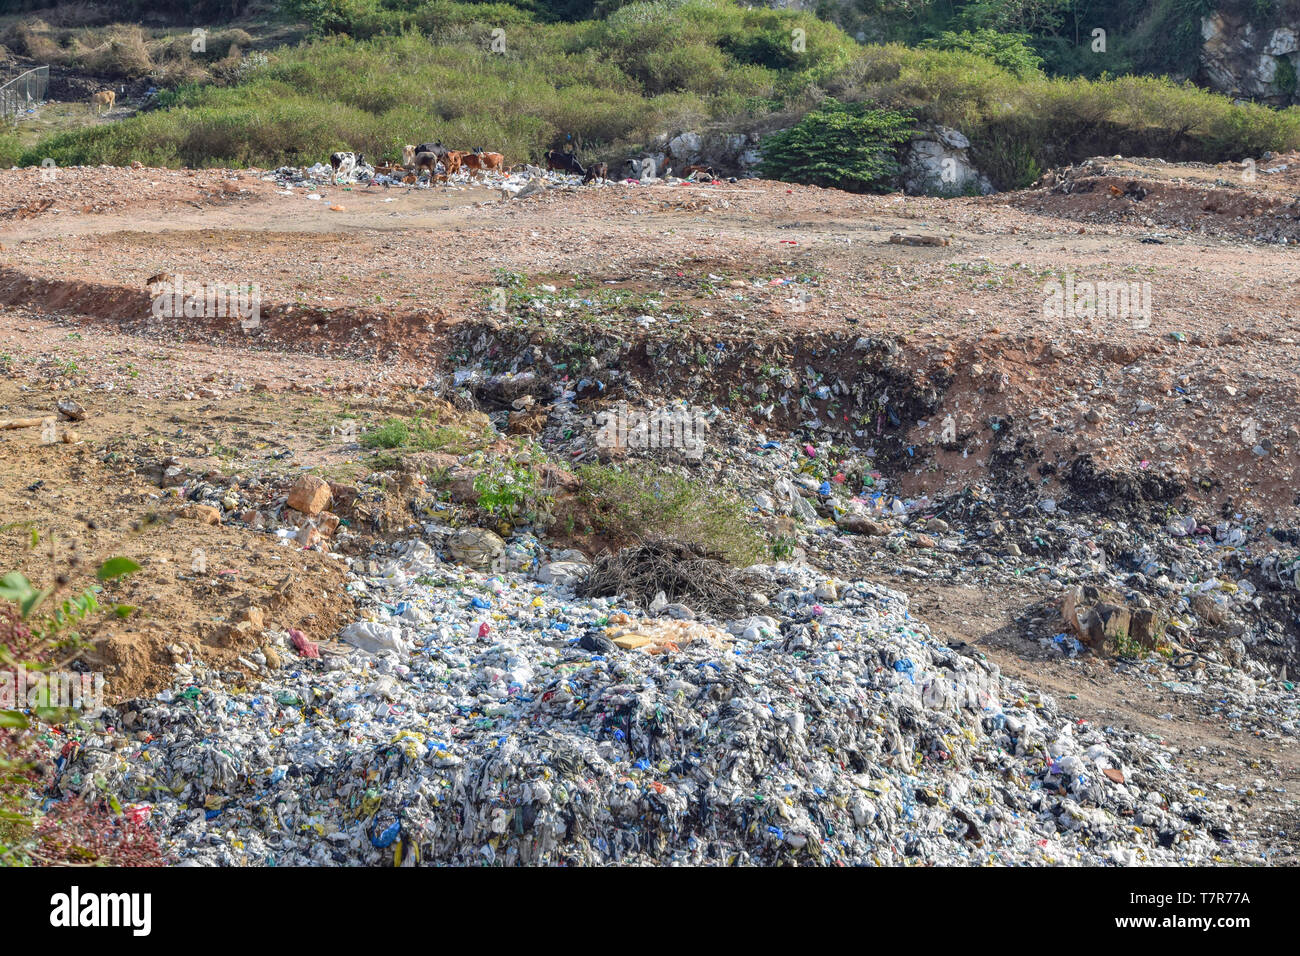 a garbage dump and some animals seen in Sri Lanka - Stock Image